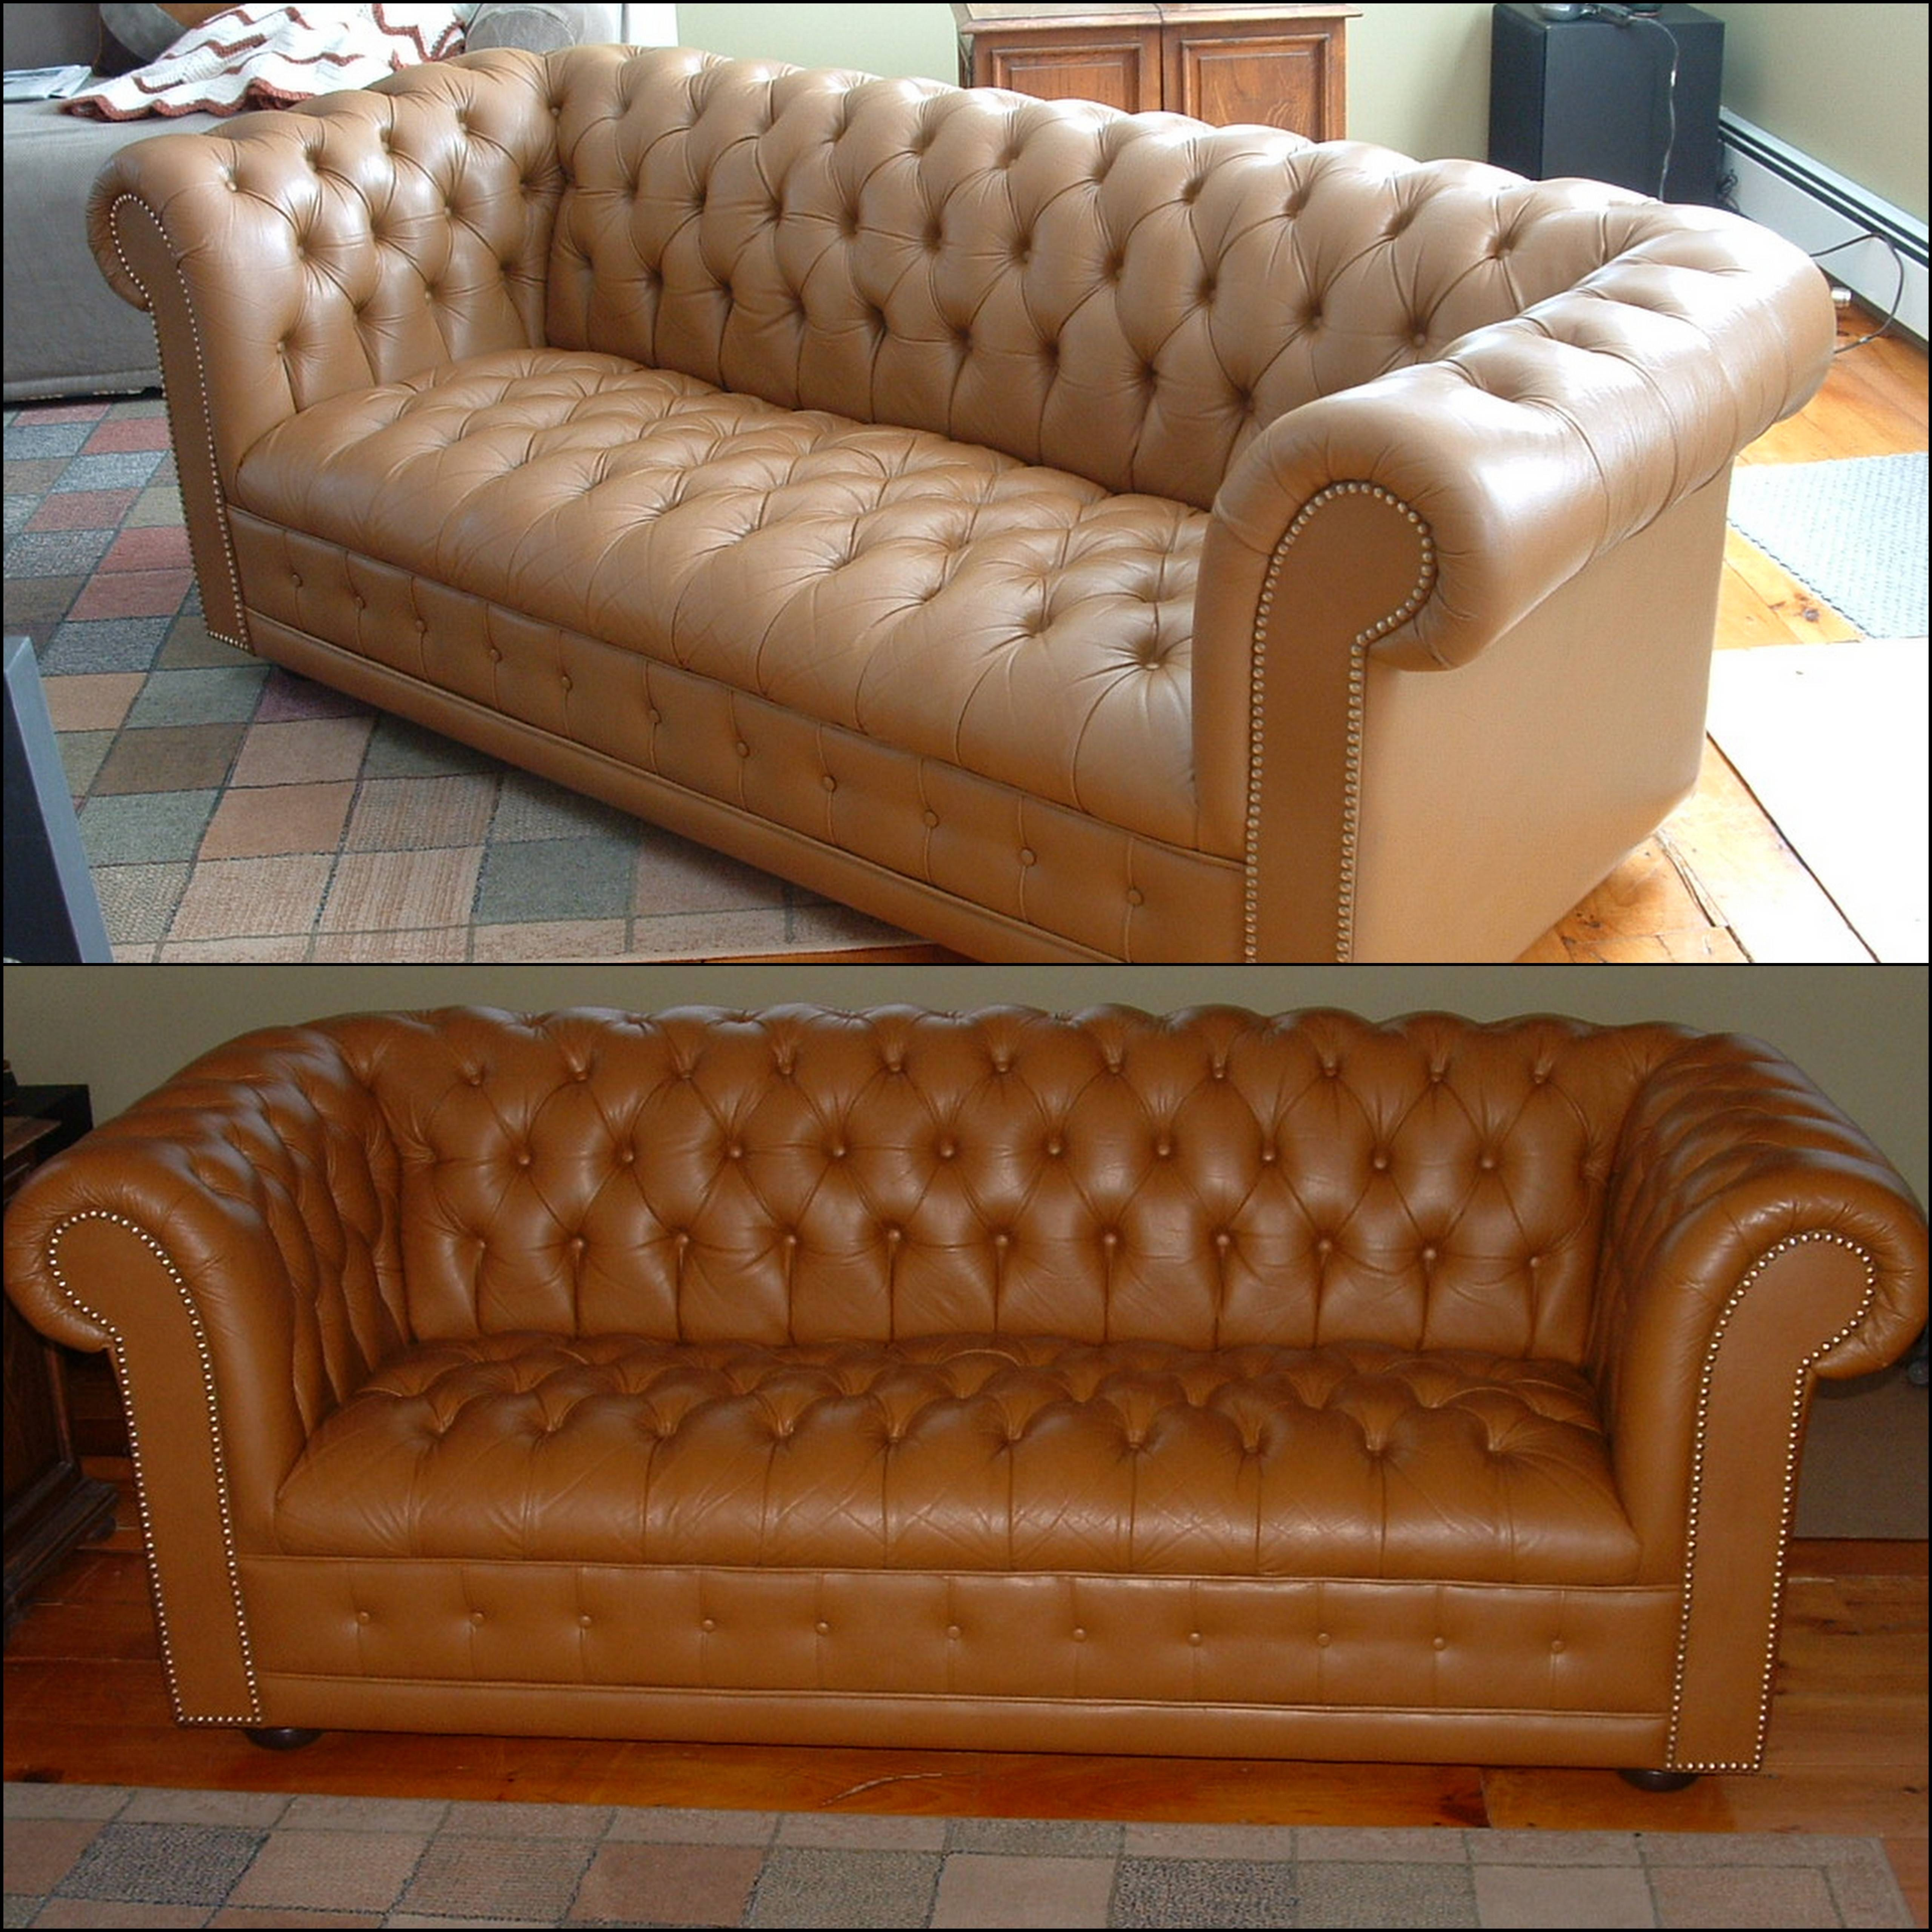 Popular Photo of Camel Colored Leather Sofas